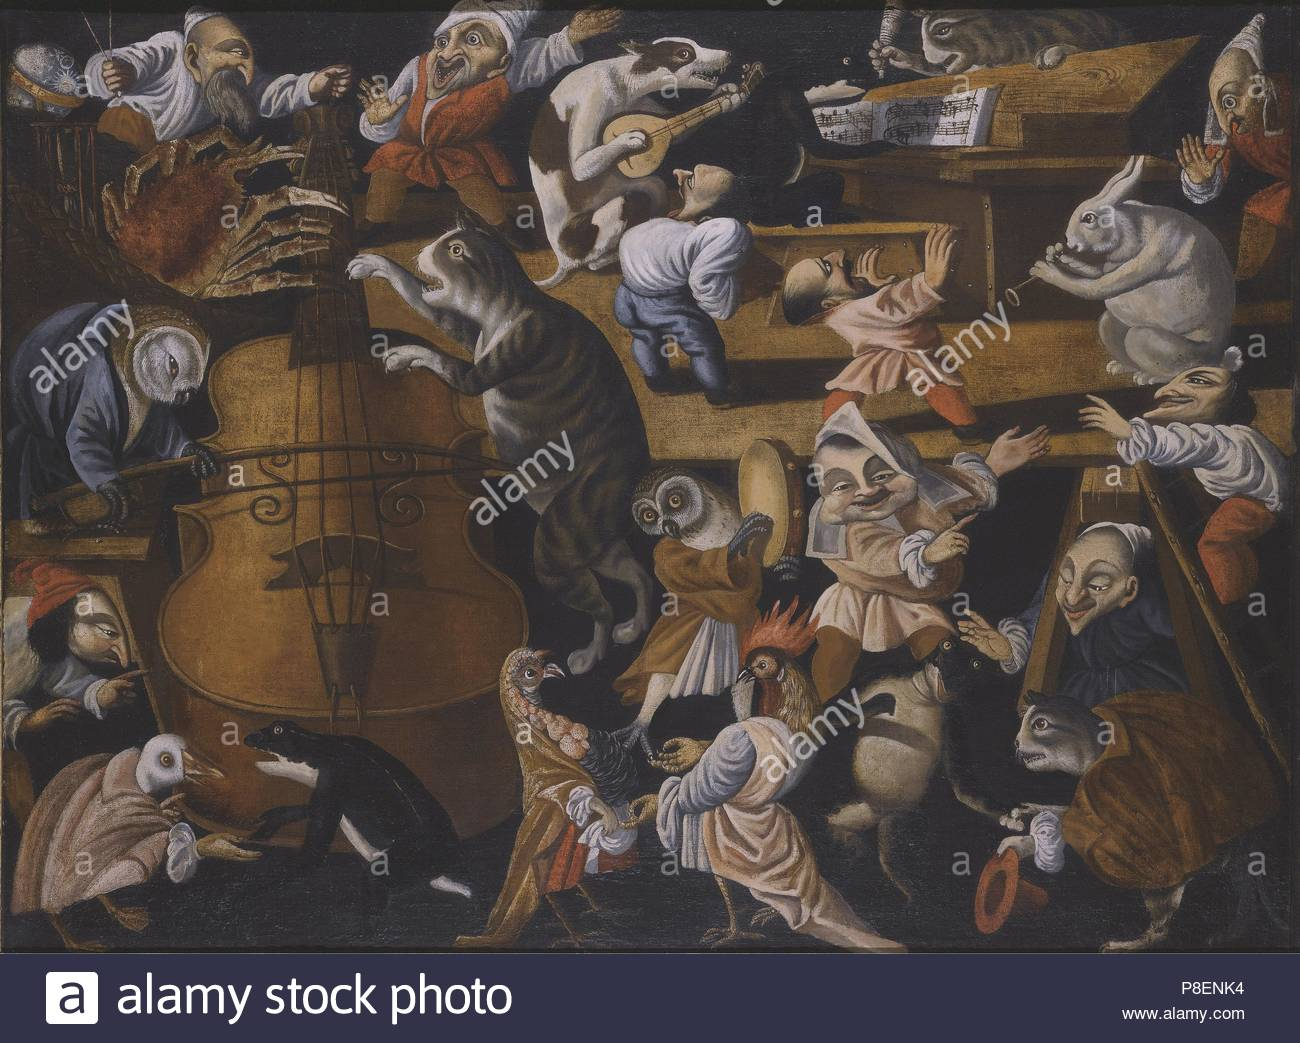 A concert of animals, birds and stylised figures. Museum: PRIVATE COLLECTION. - Stock Image